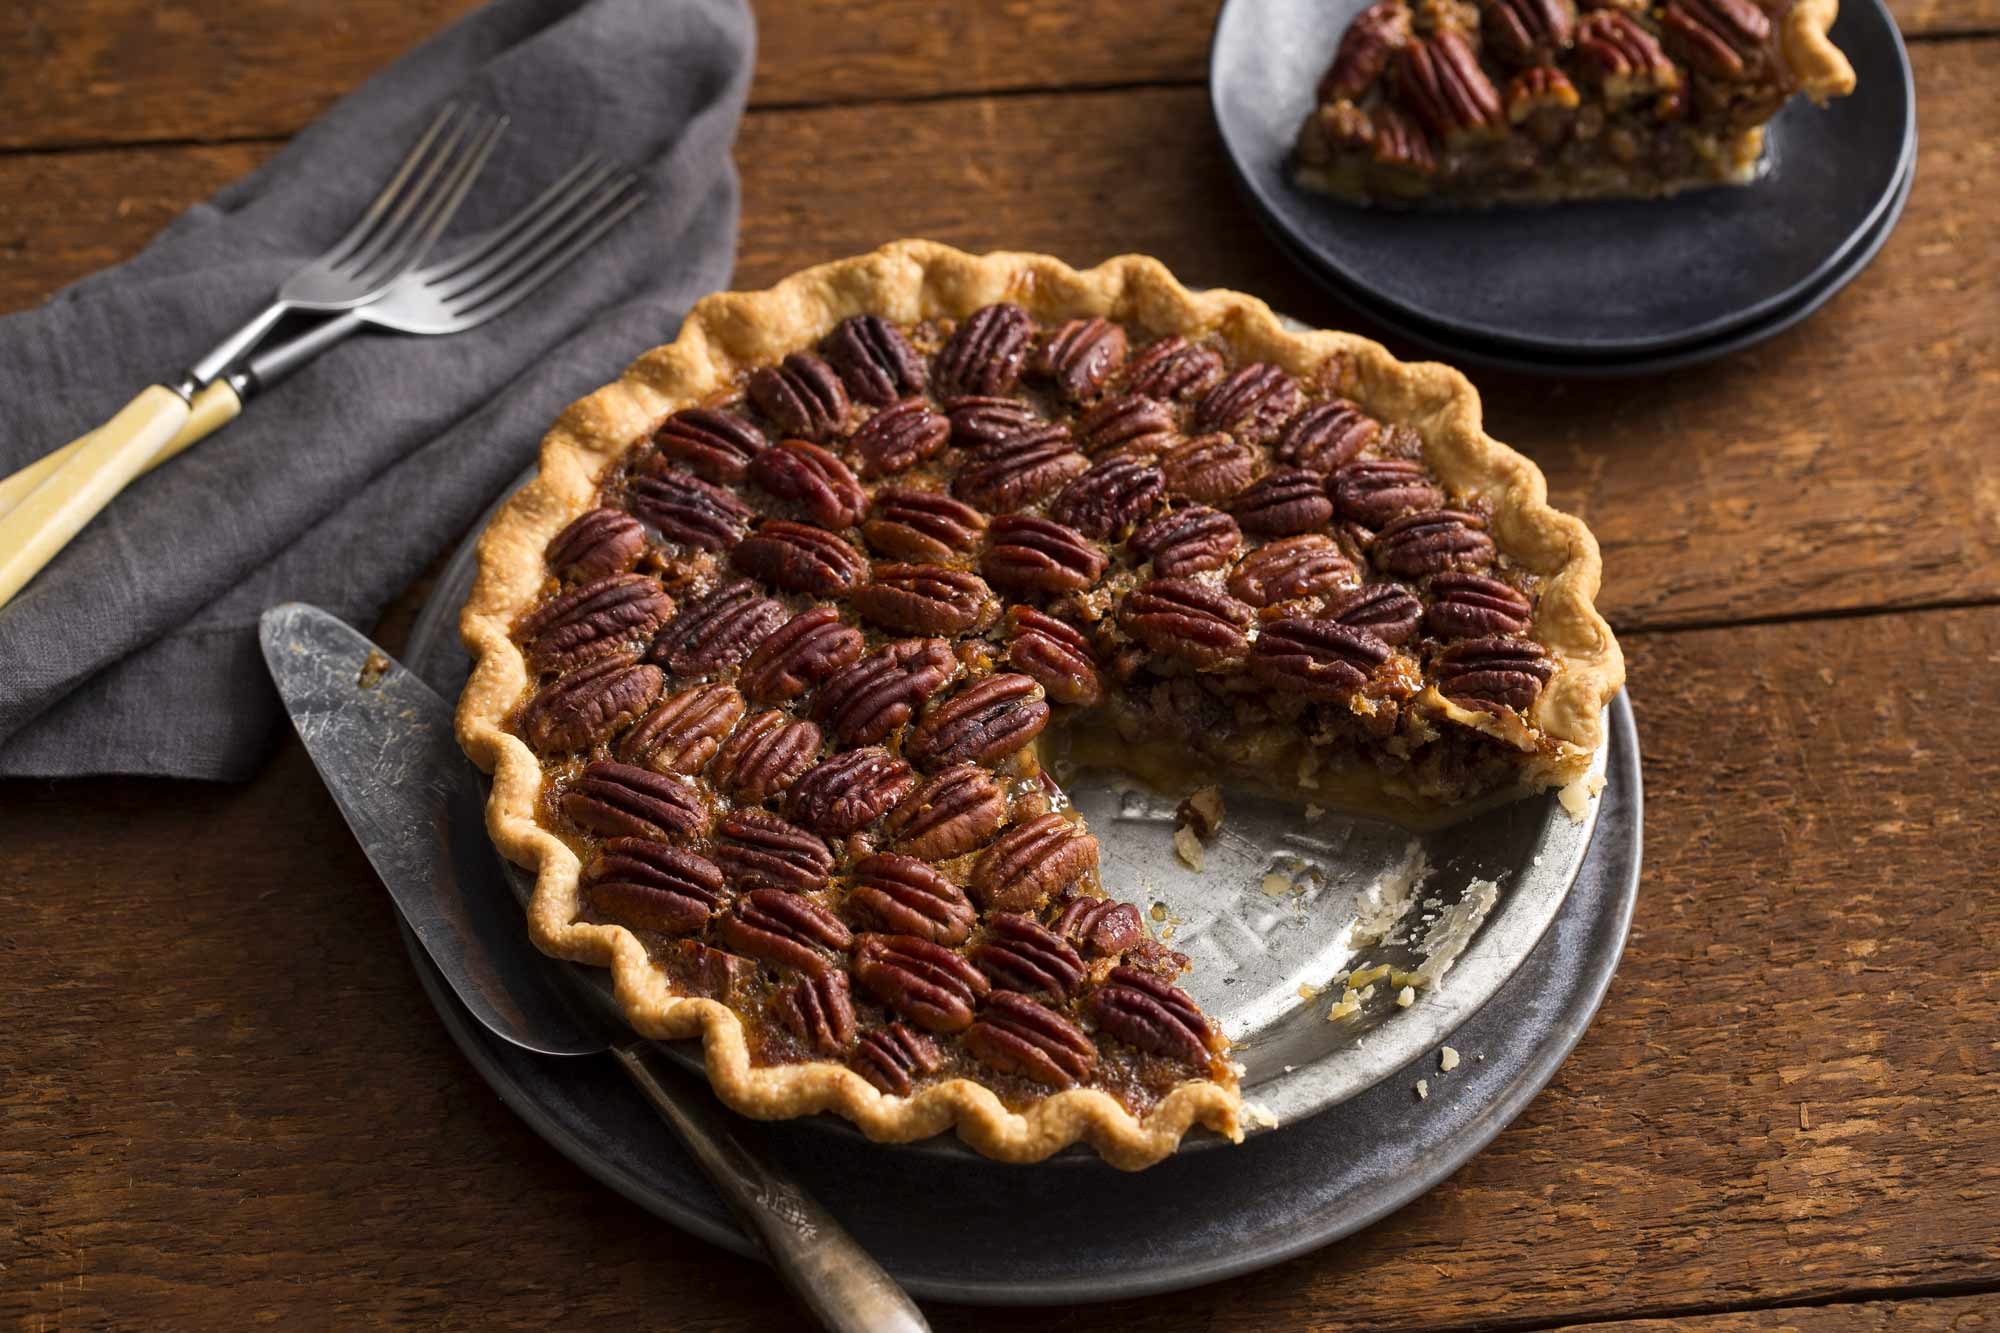 Pecan Pie_Horizontal_Slice Removed